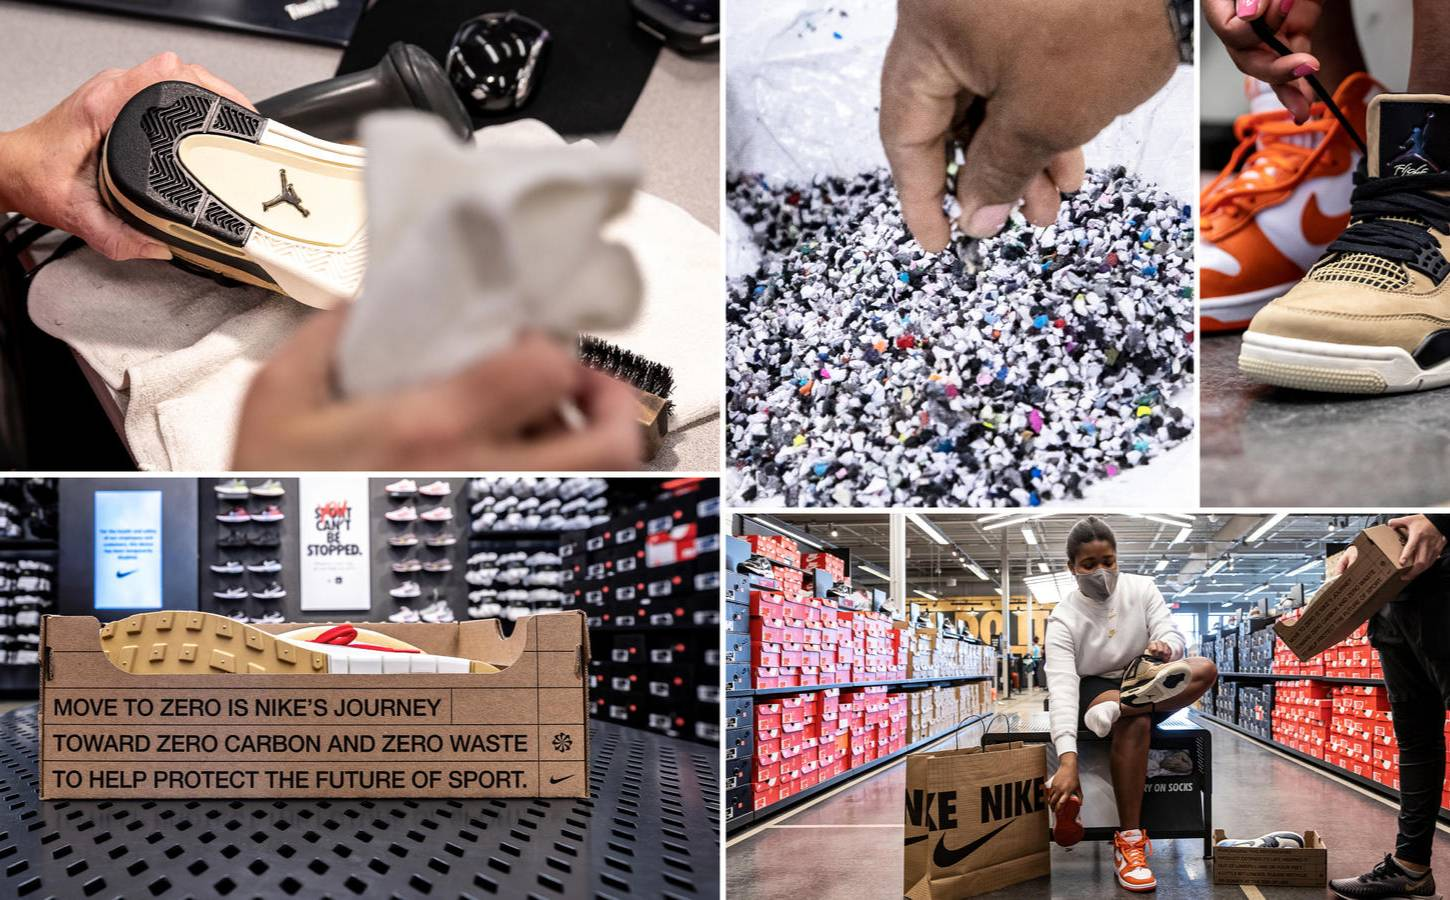 Nike launches refurbished program to recycle sneakers